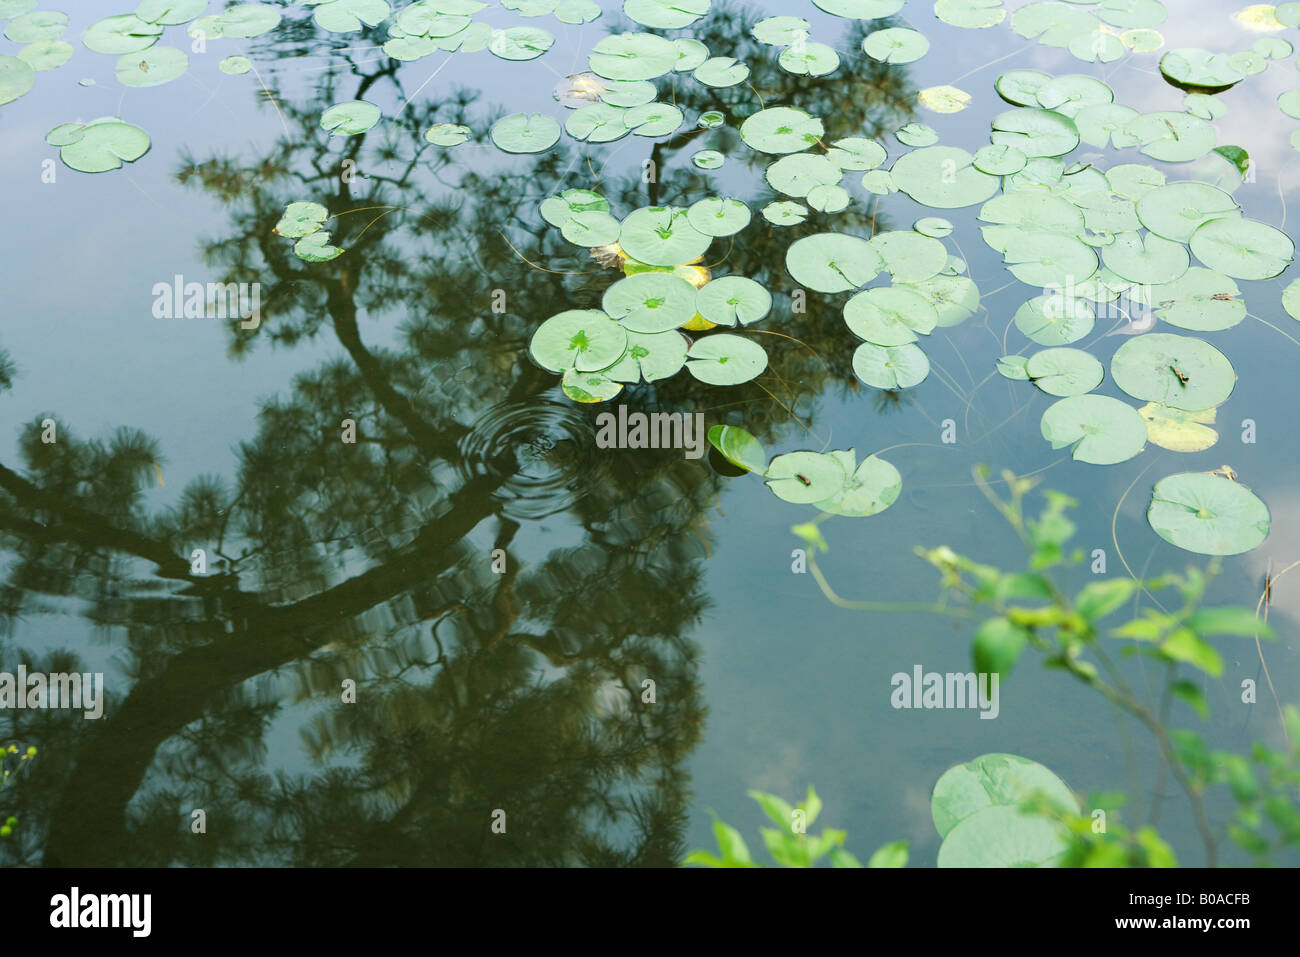 Lily pads in pond with reflection of tree branch Stock Photo